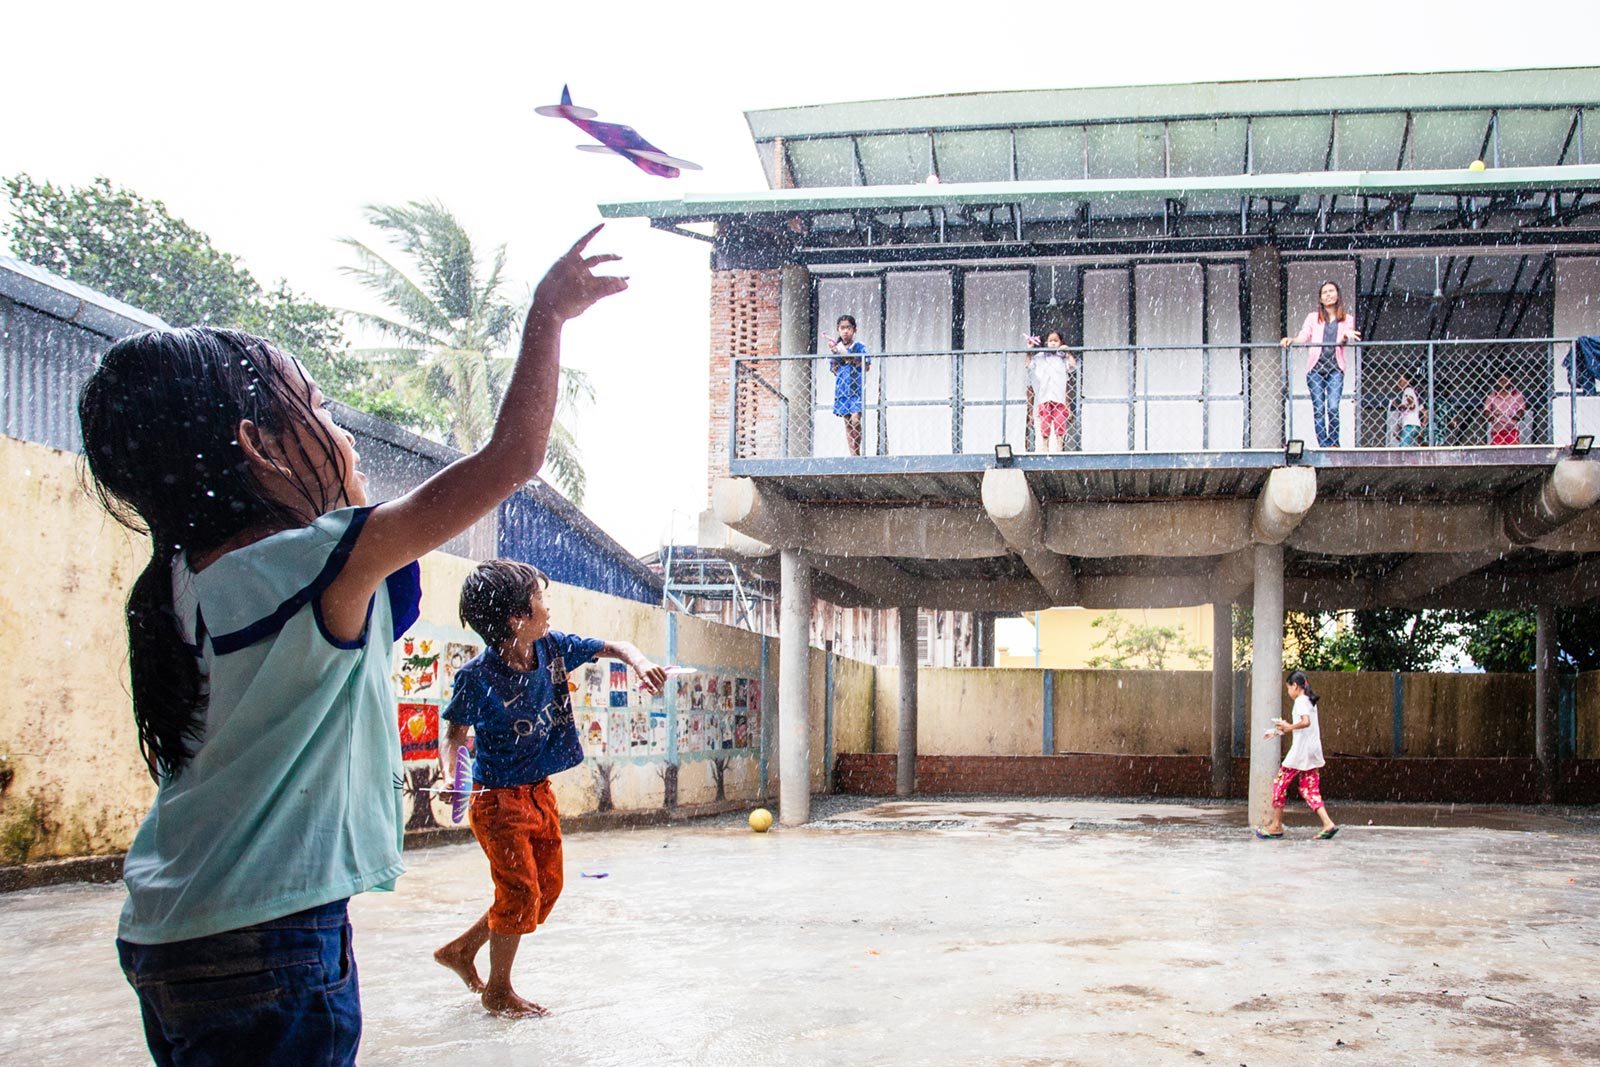 Children playing at the Bomnong L'or Community Centre in Cambodia. The Centre sits on a dense urban site and is contructed out of fabric-formed post and beam concrete, engaging local female tailors, and is raised up similar to traditional wooden Khmer houses to create a large playground underneath. Image Credit: Lindsay Perth